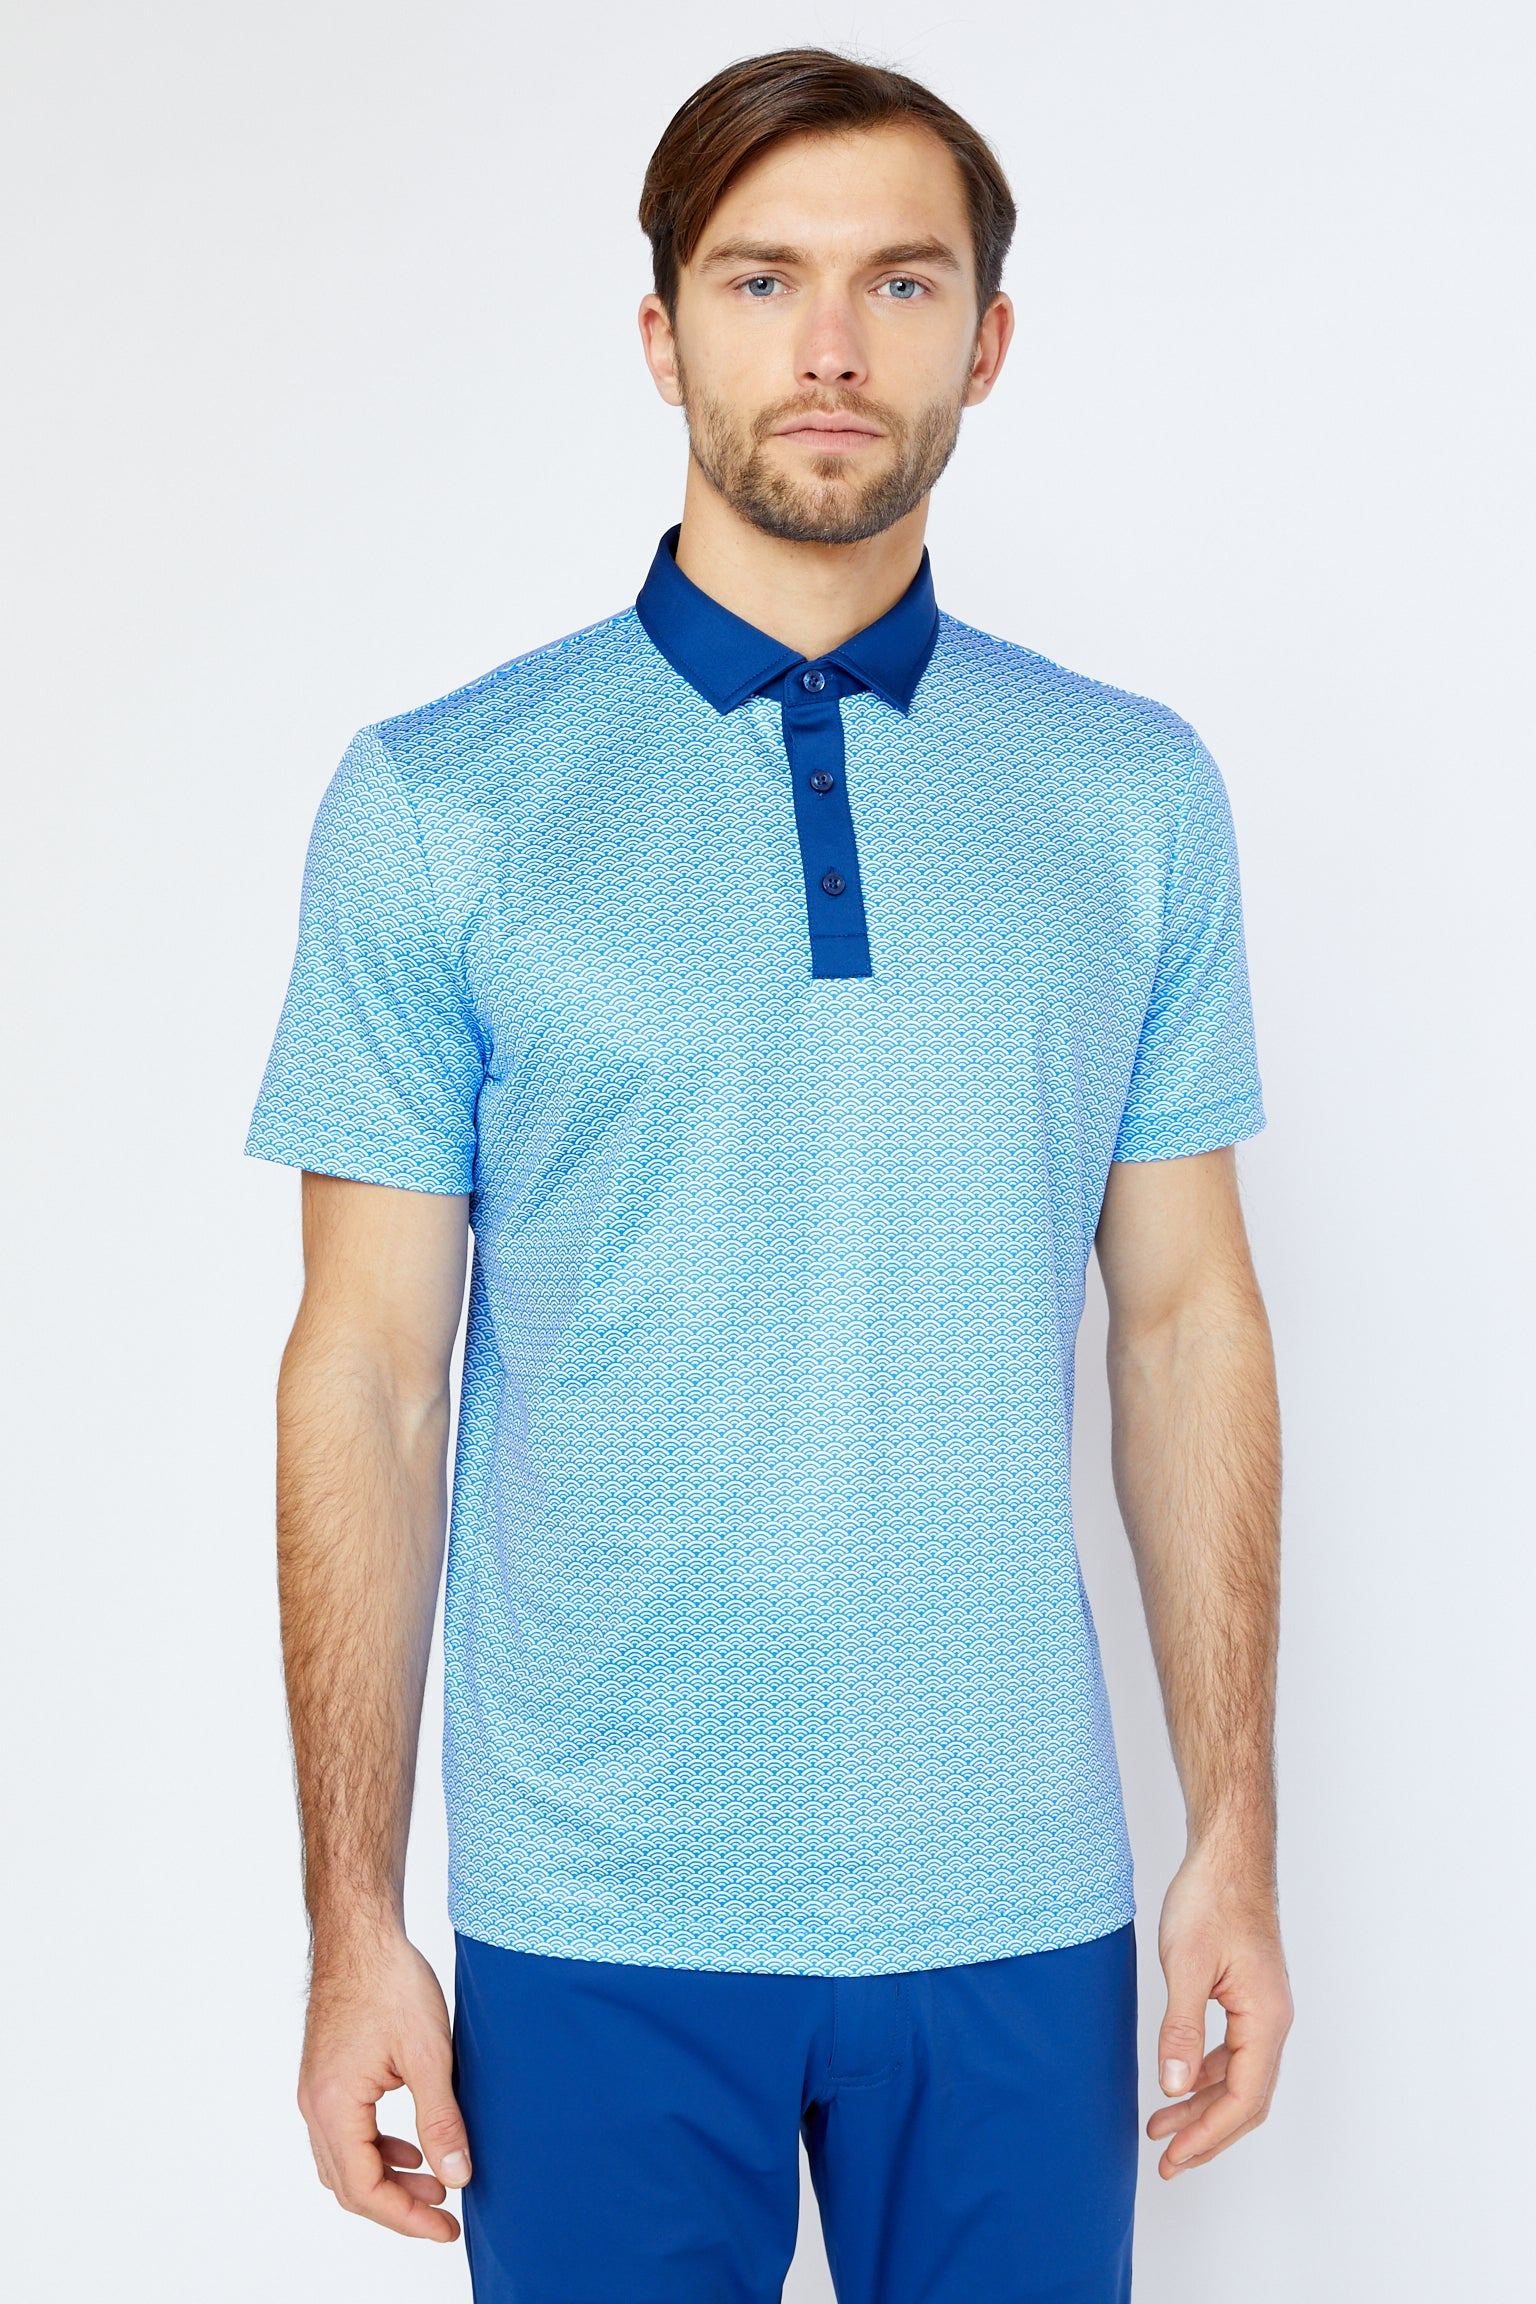 Folsom Polo in Victoria Blue